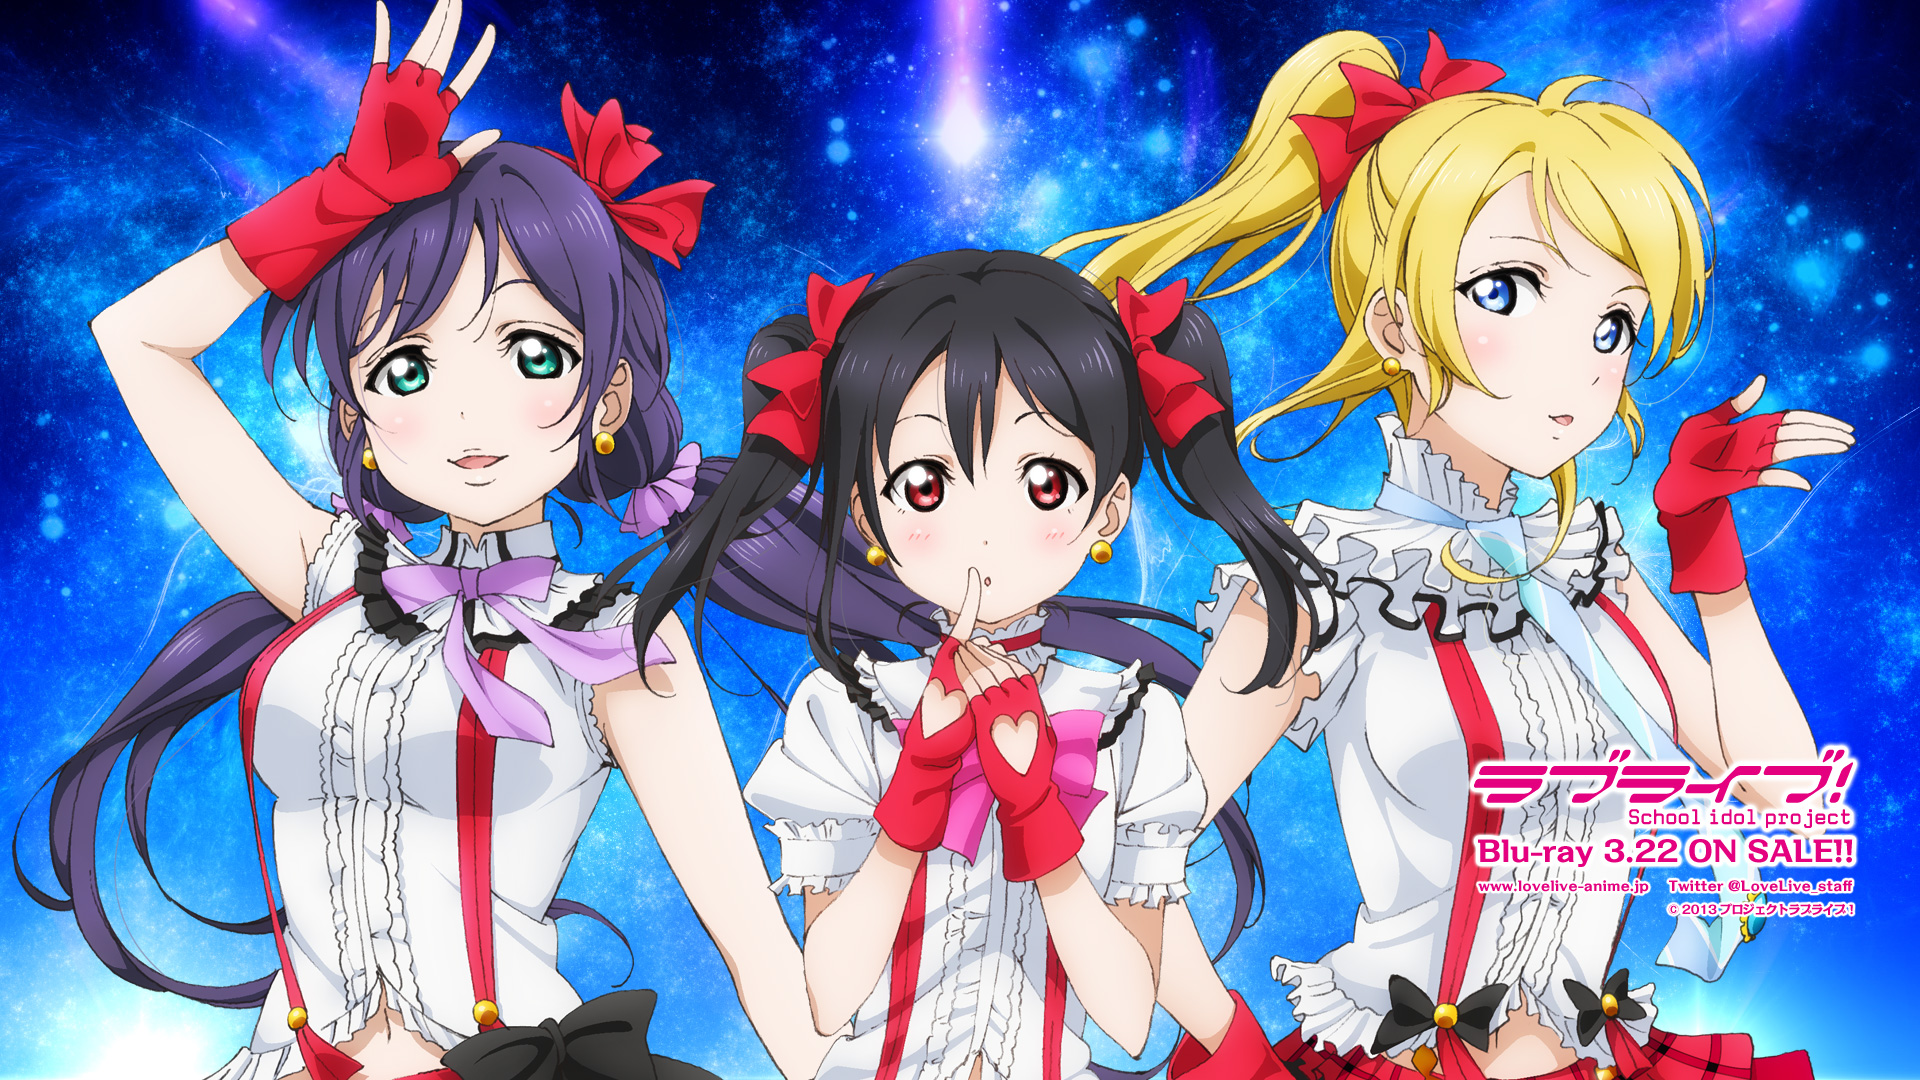 Love Live Wallpaper Hd For Pc : Love Live! HD Wallpaper #1442325 - Zerochan Anime Image Board